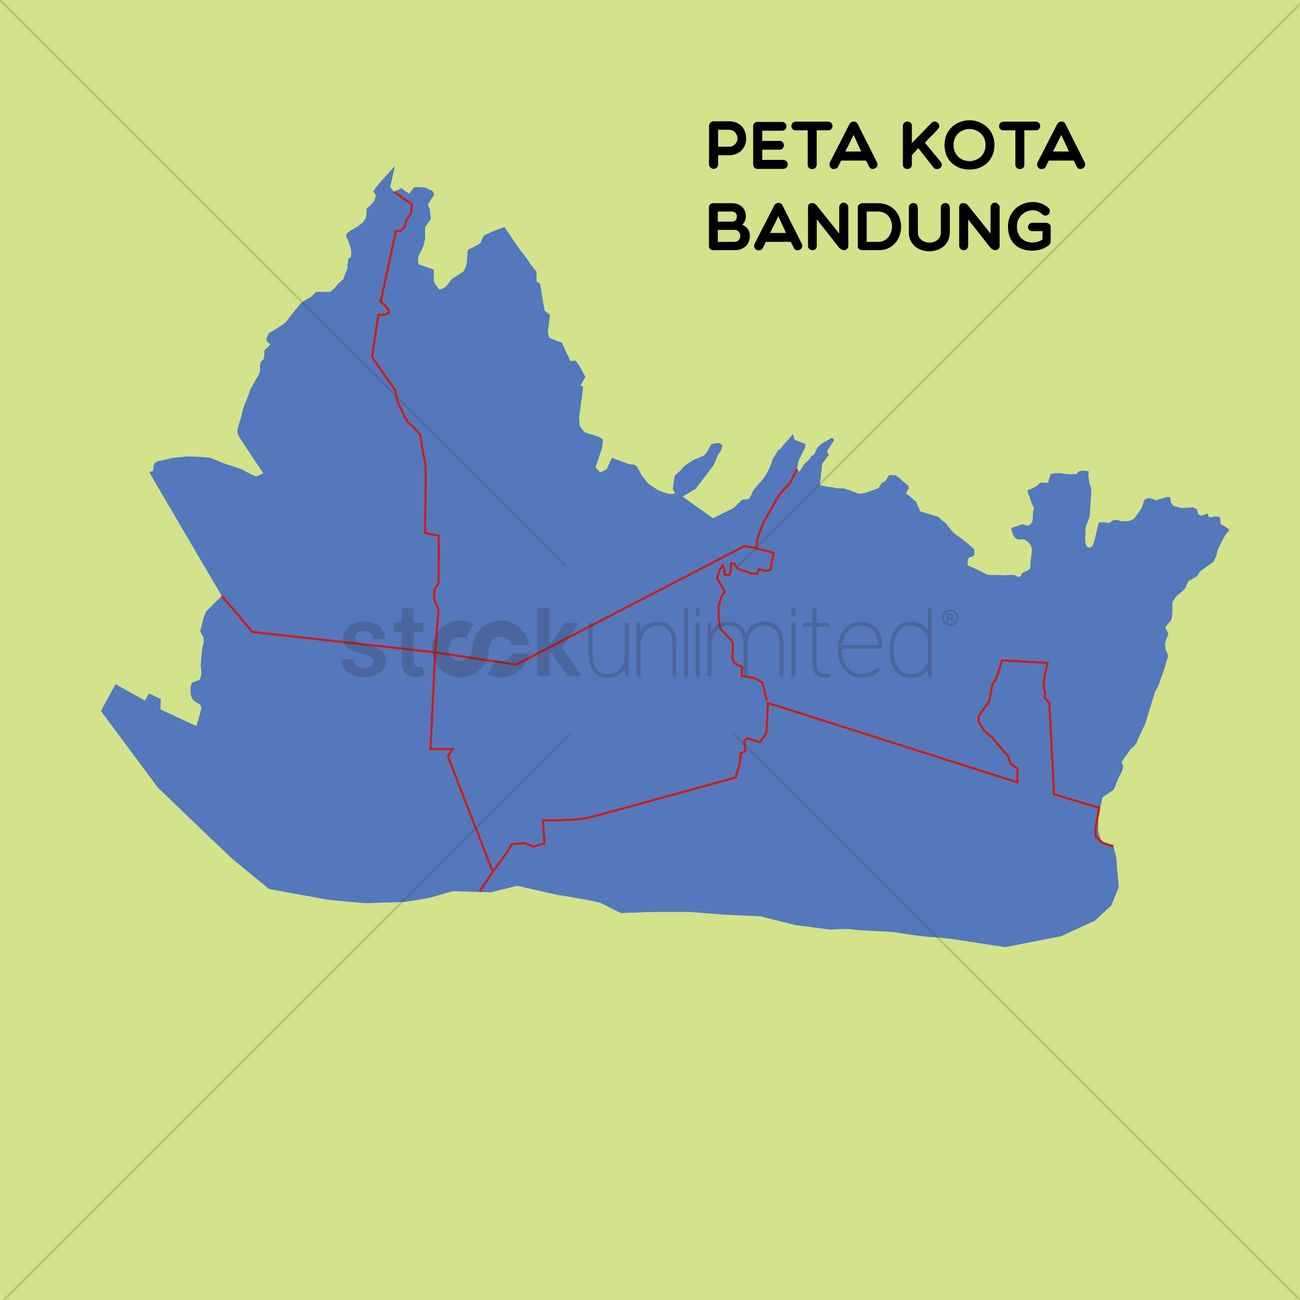 high resolution map with Map Of Kota Bandung 1480495 on Hdri Sky 196 as well Index besides E4 B8 96 E7 95 8C E5 9C B0 E5 9B B3 E5 9B BD E5 90 8D E9 A6 96 E9 83 BD additionally 1430420910 together with World Physical Map Wallpapers Pictures.